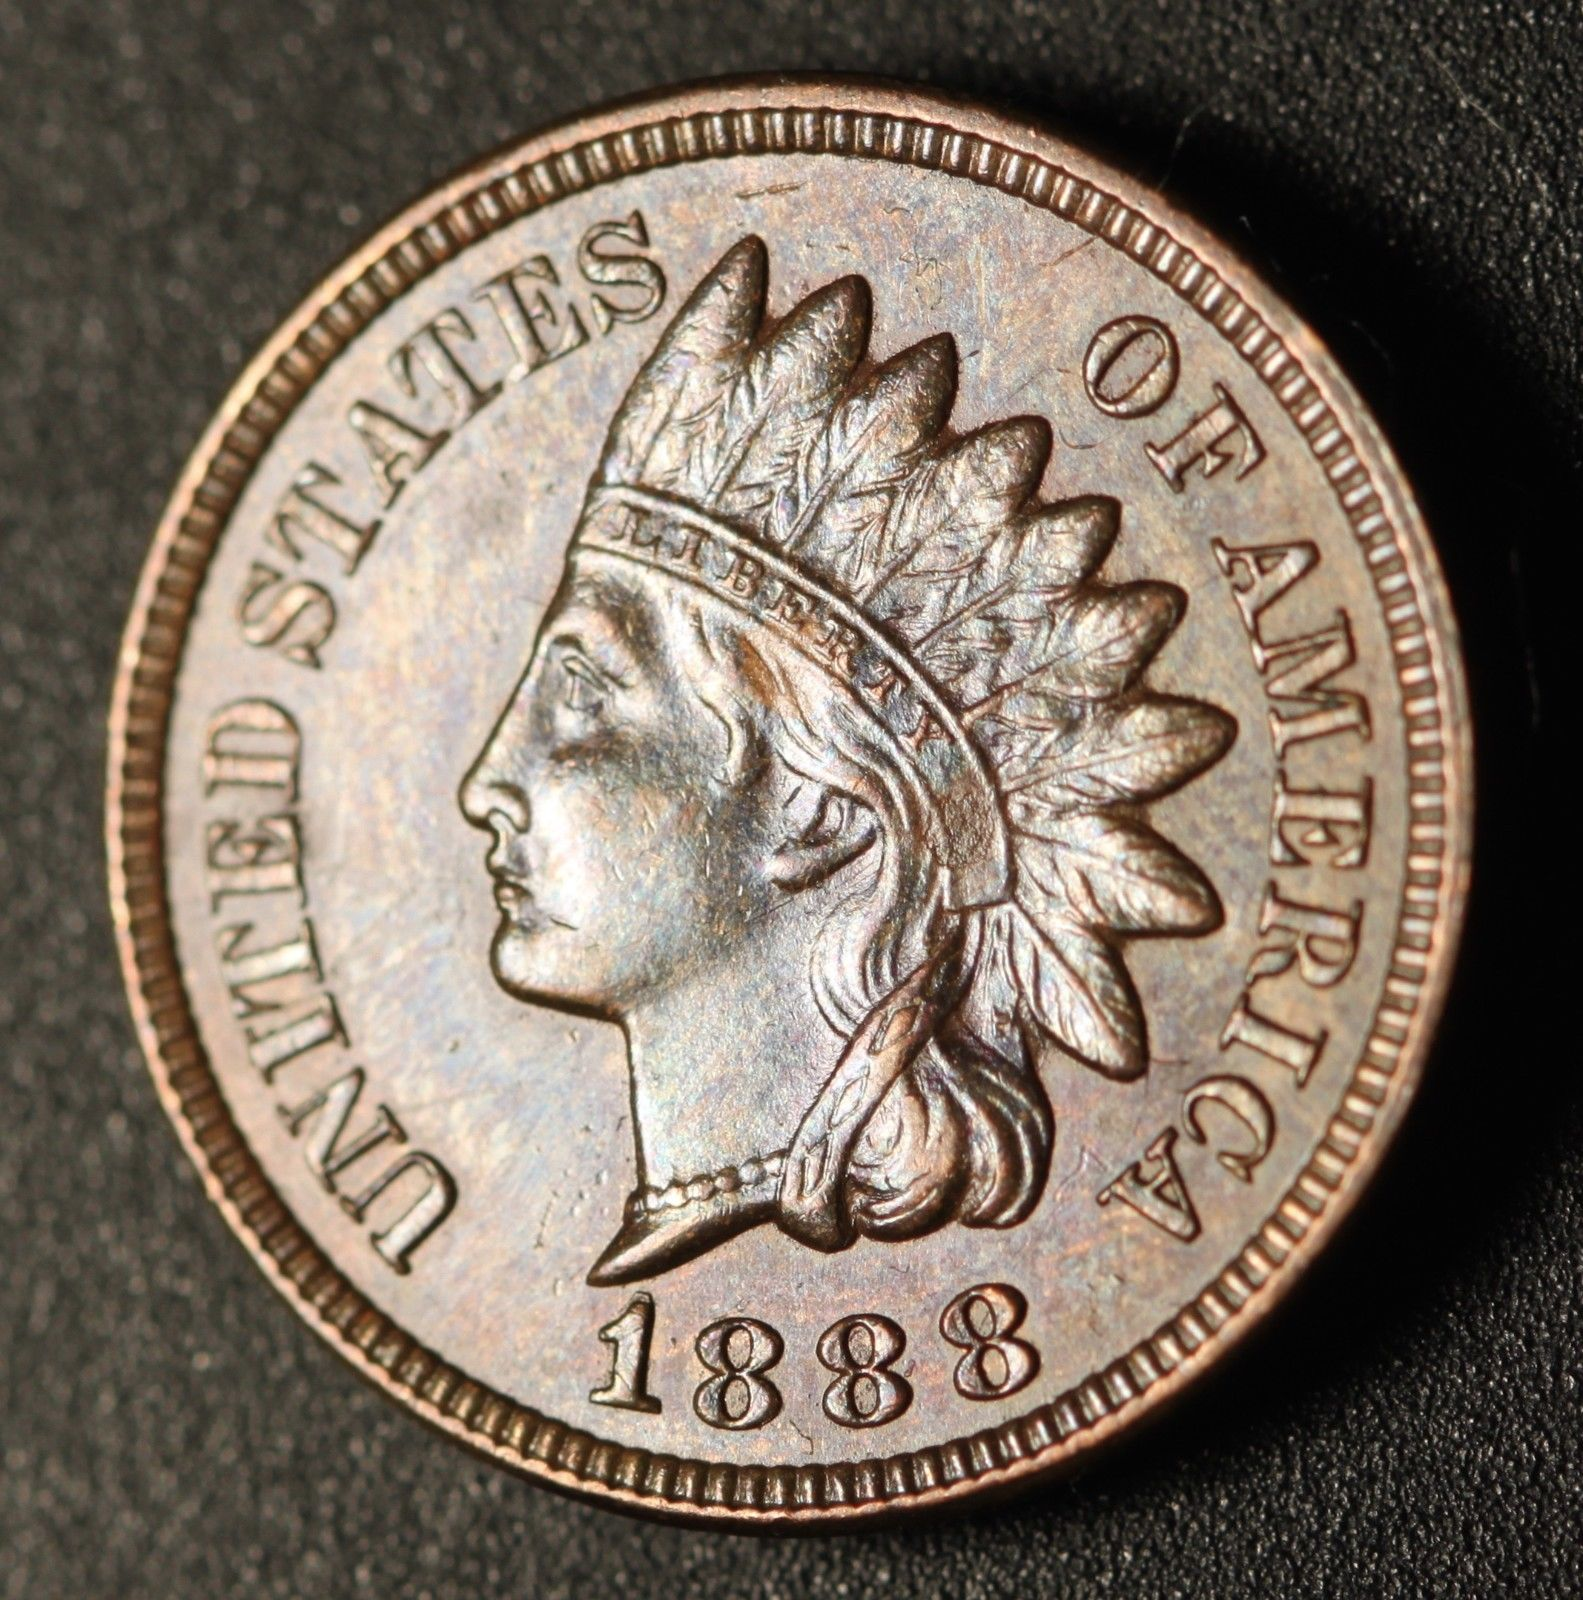 1888 RPD-014 - Indian Head Penny - Photo by Ed Nathanson